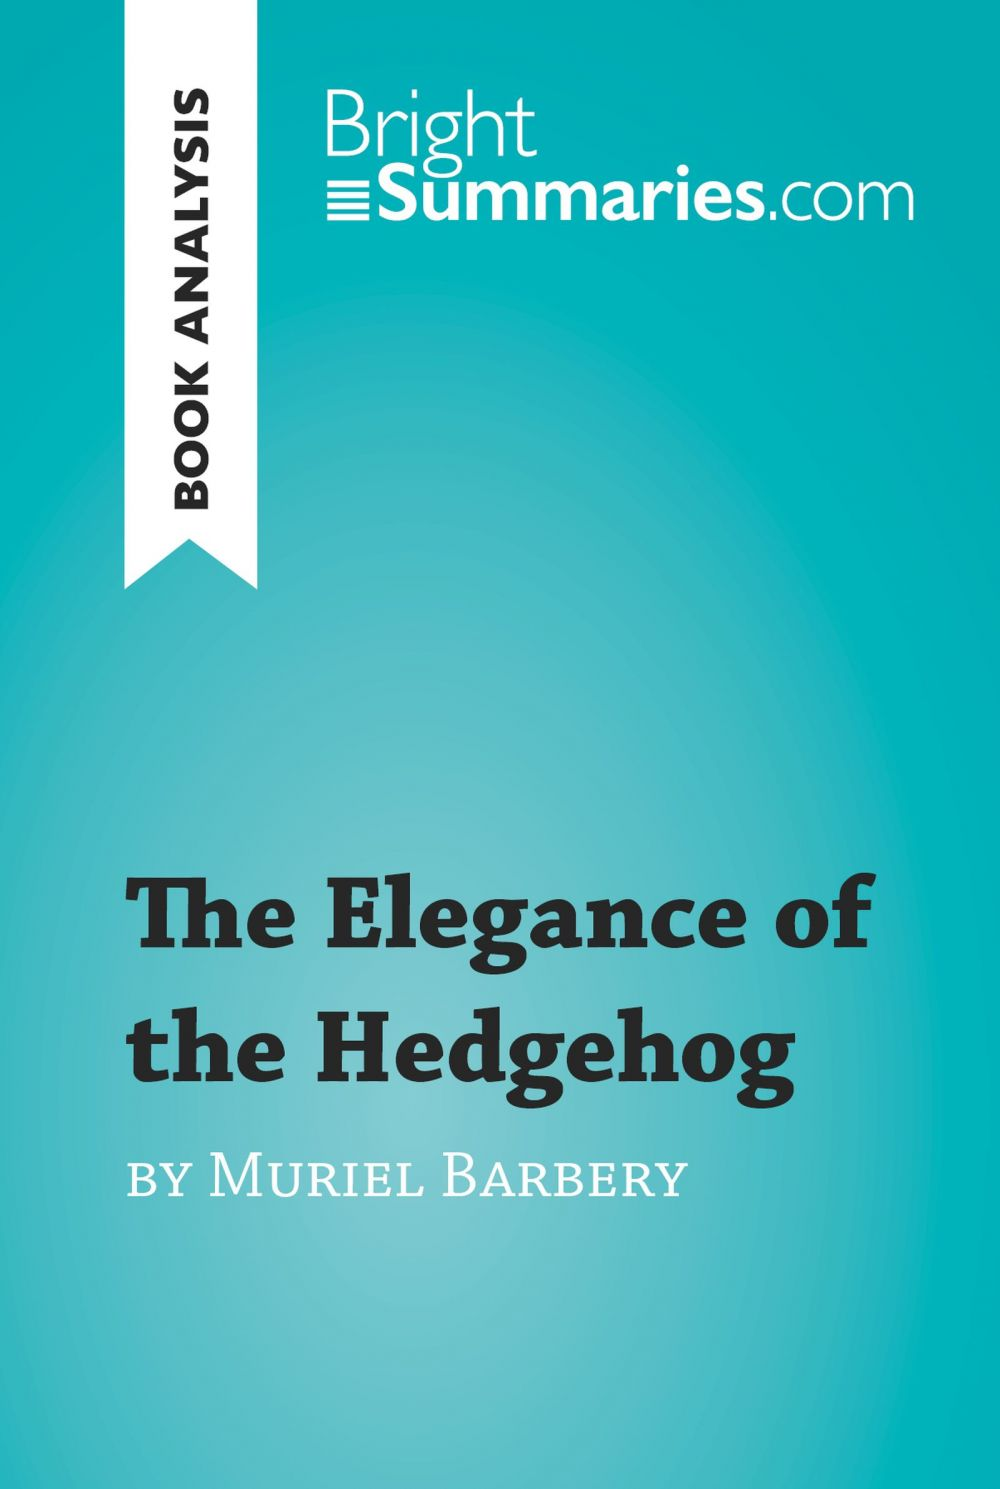 The Elegance of the Hedgehog by Muriel Barbery (Book Analysis)